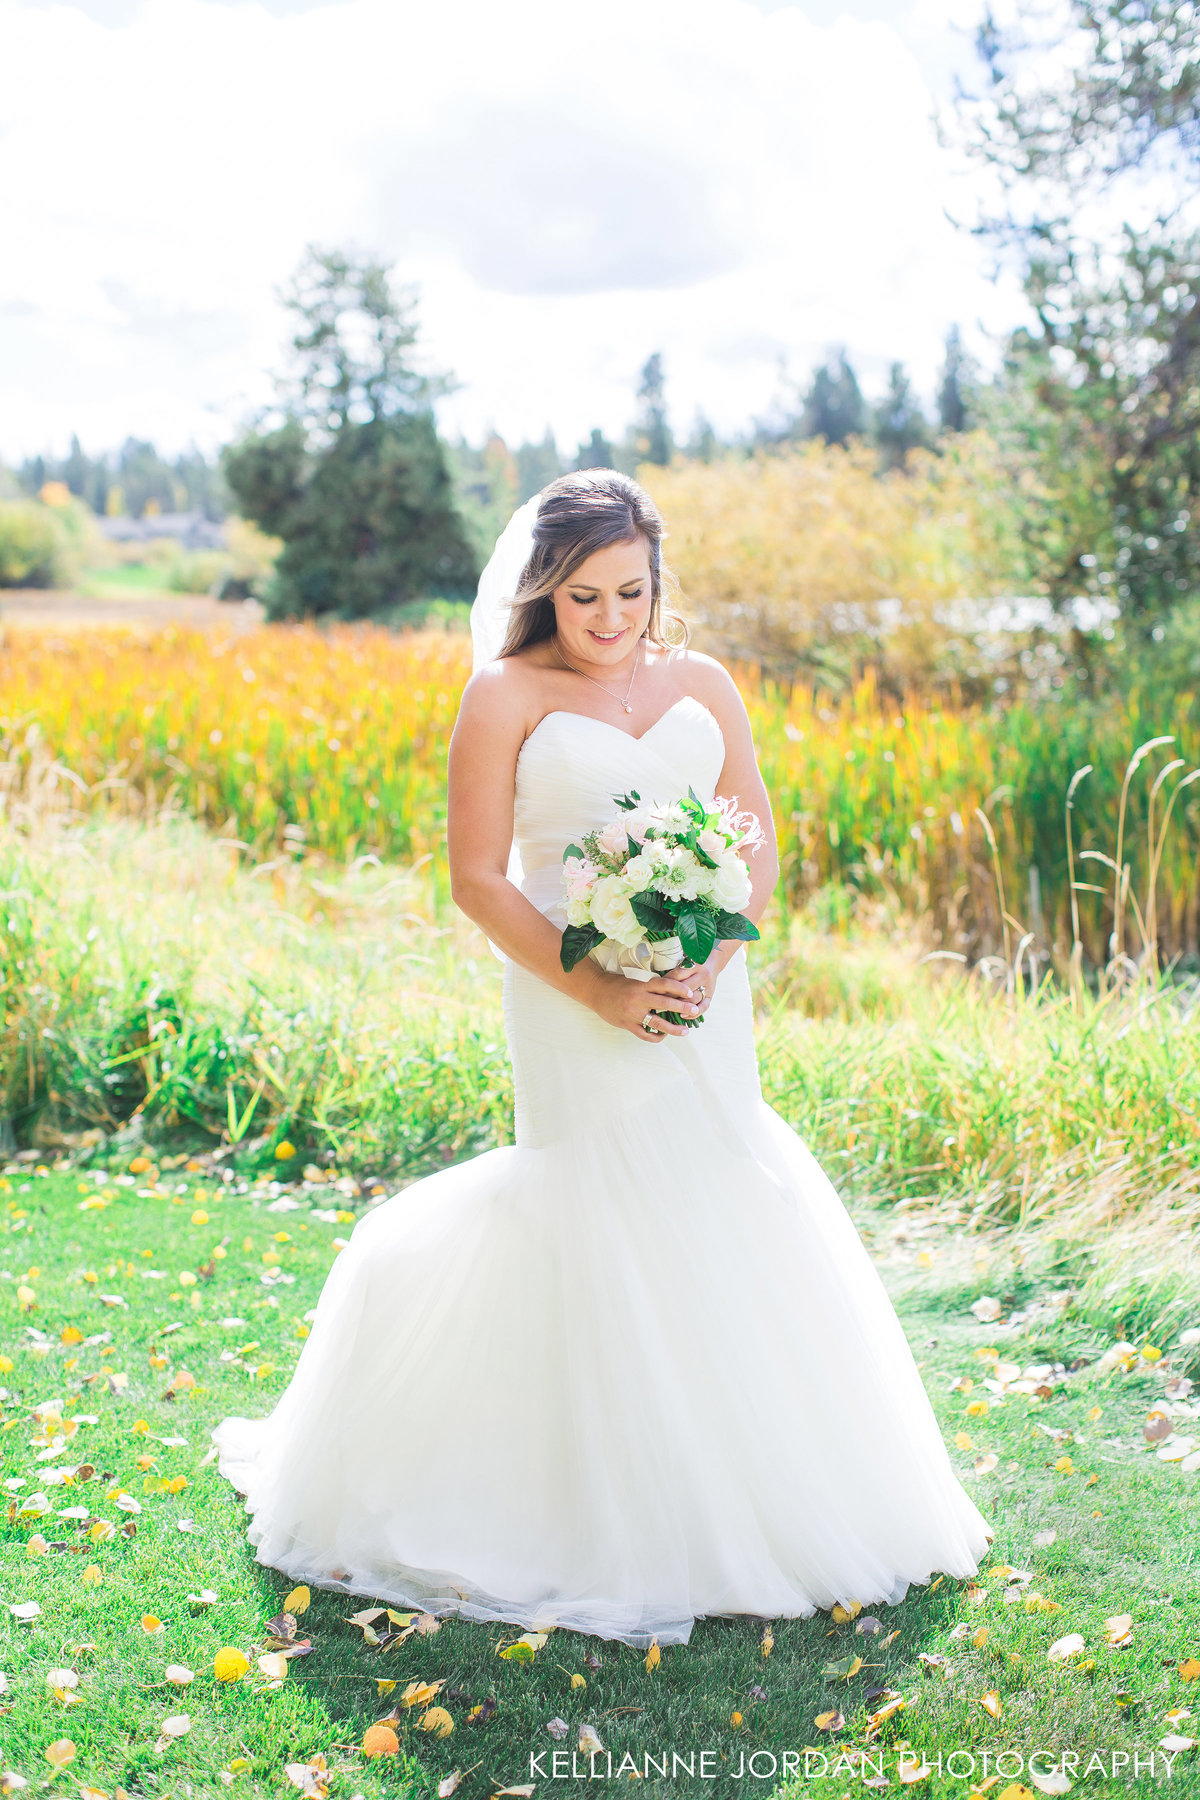 Chelsi+JohnnyWed-012-3940